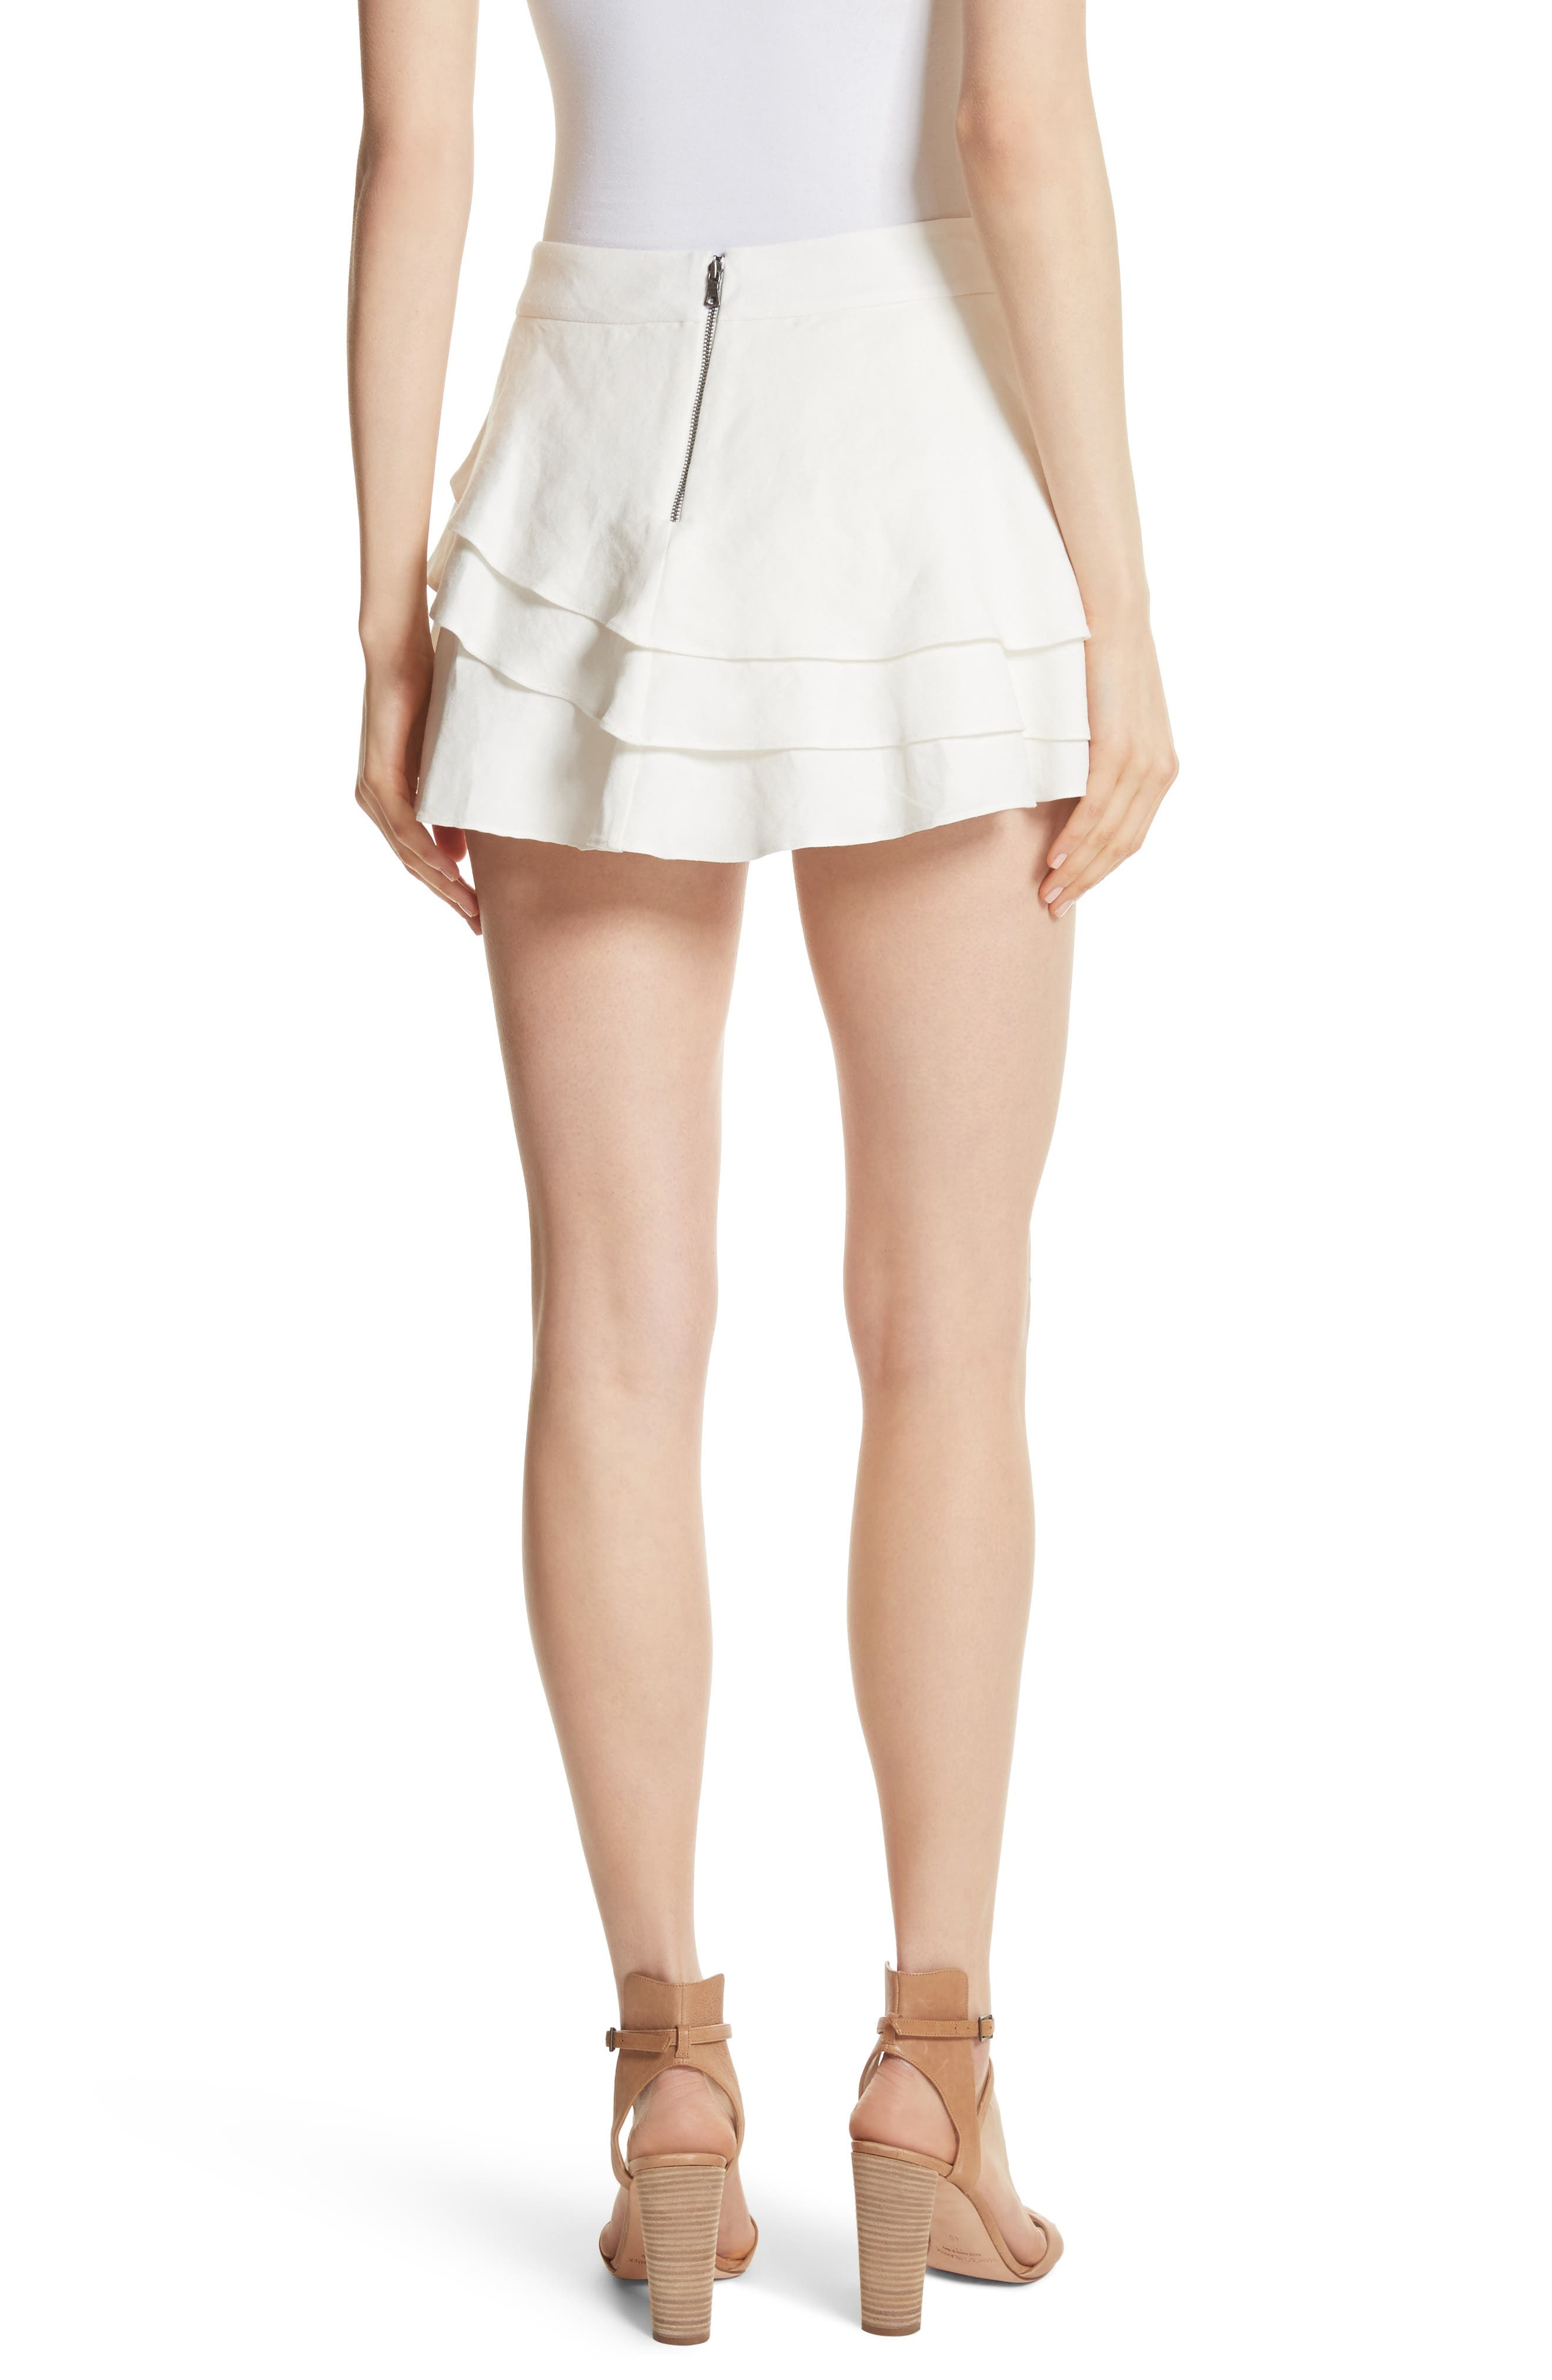 ALICE + OLIVIA,                             Mariella Tiered Ruffle Skort,                             Alternate thumbnail 2, color,                             127